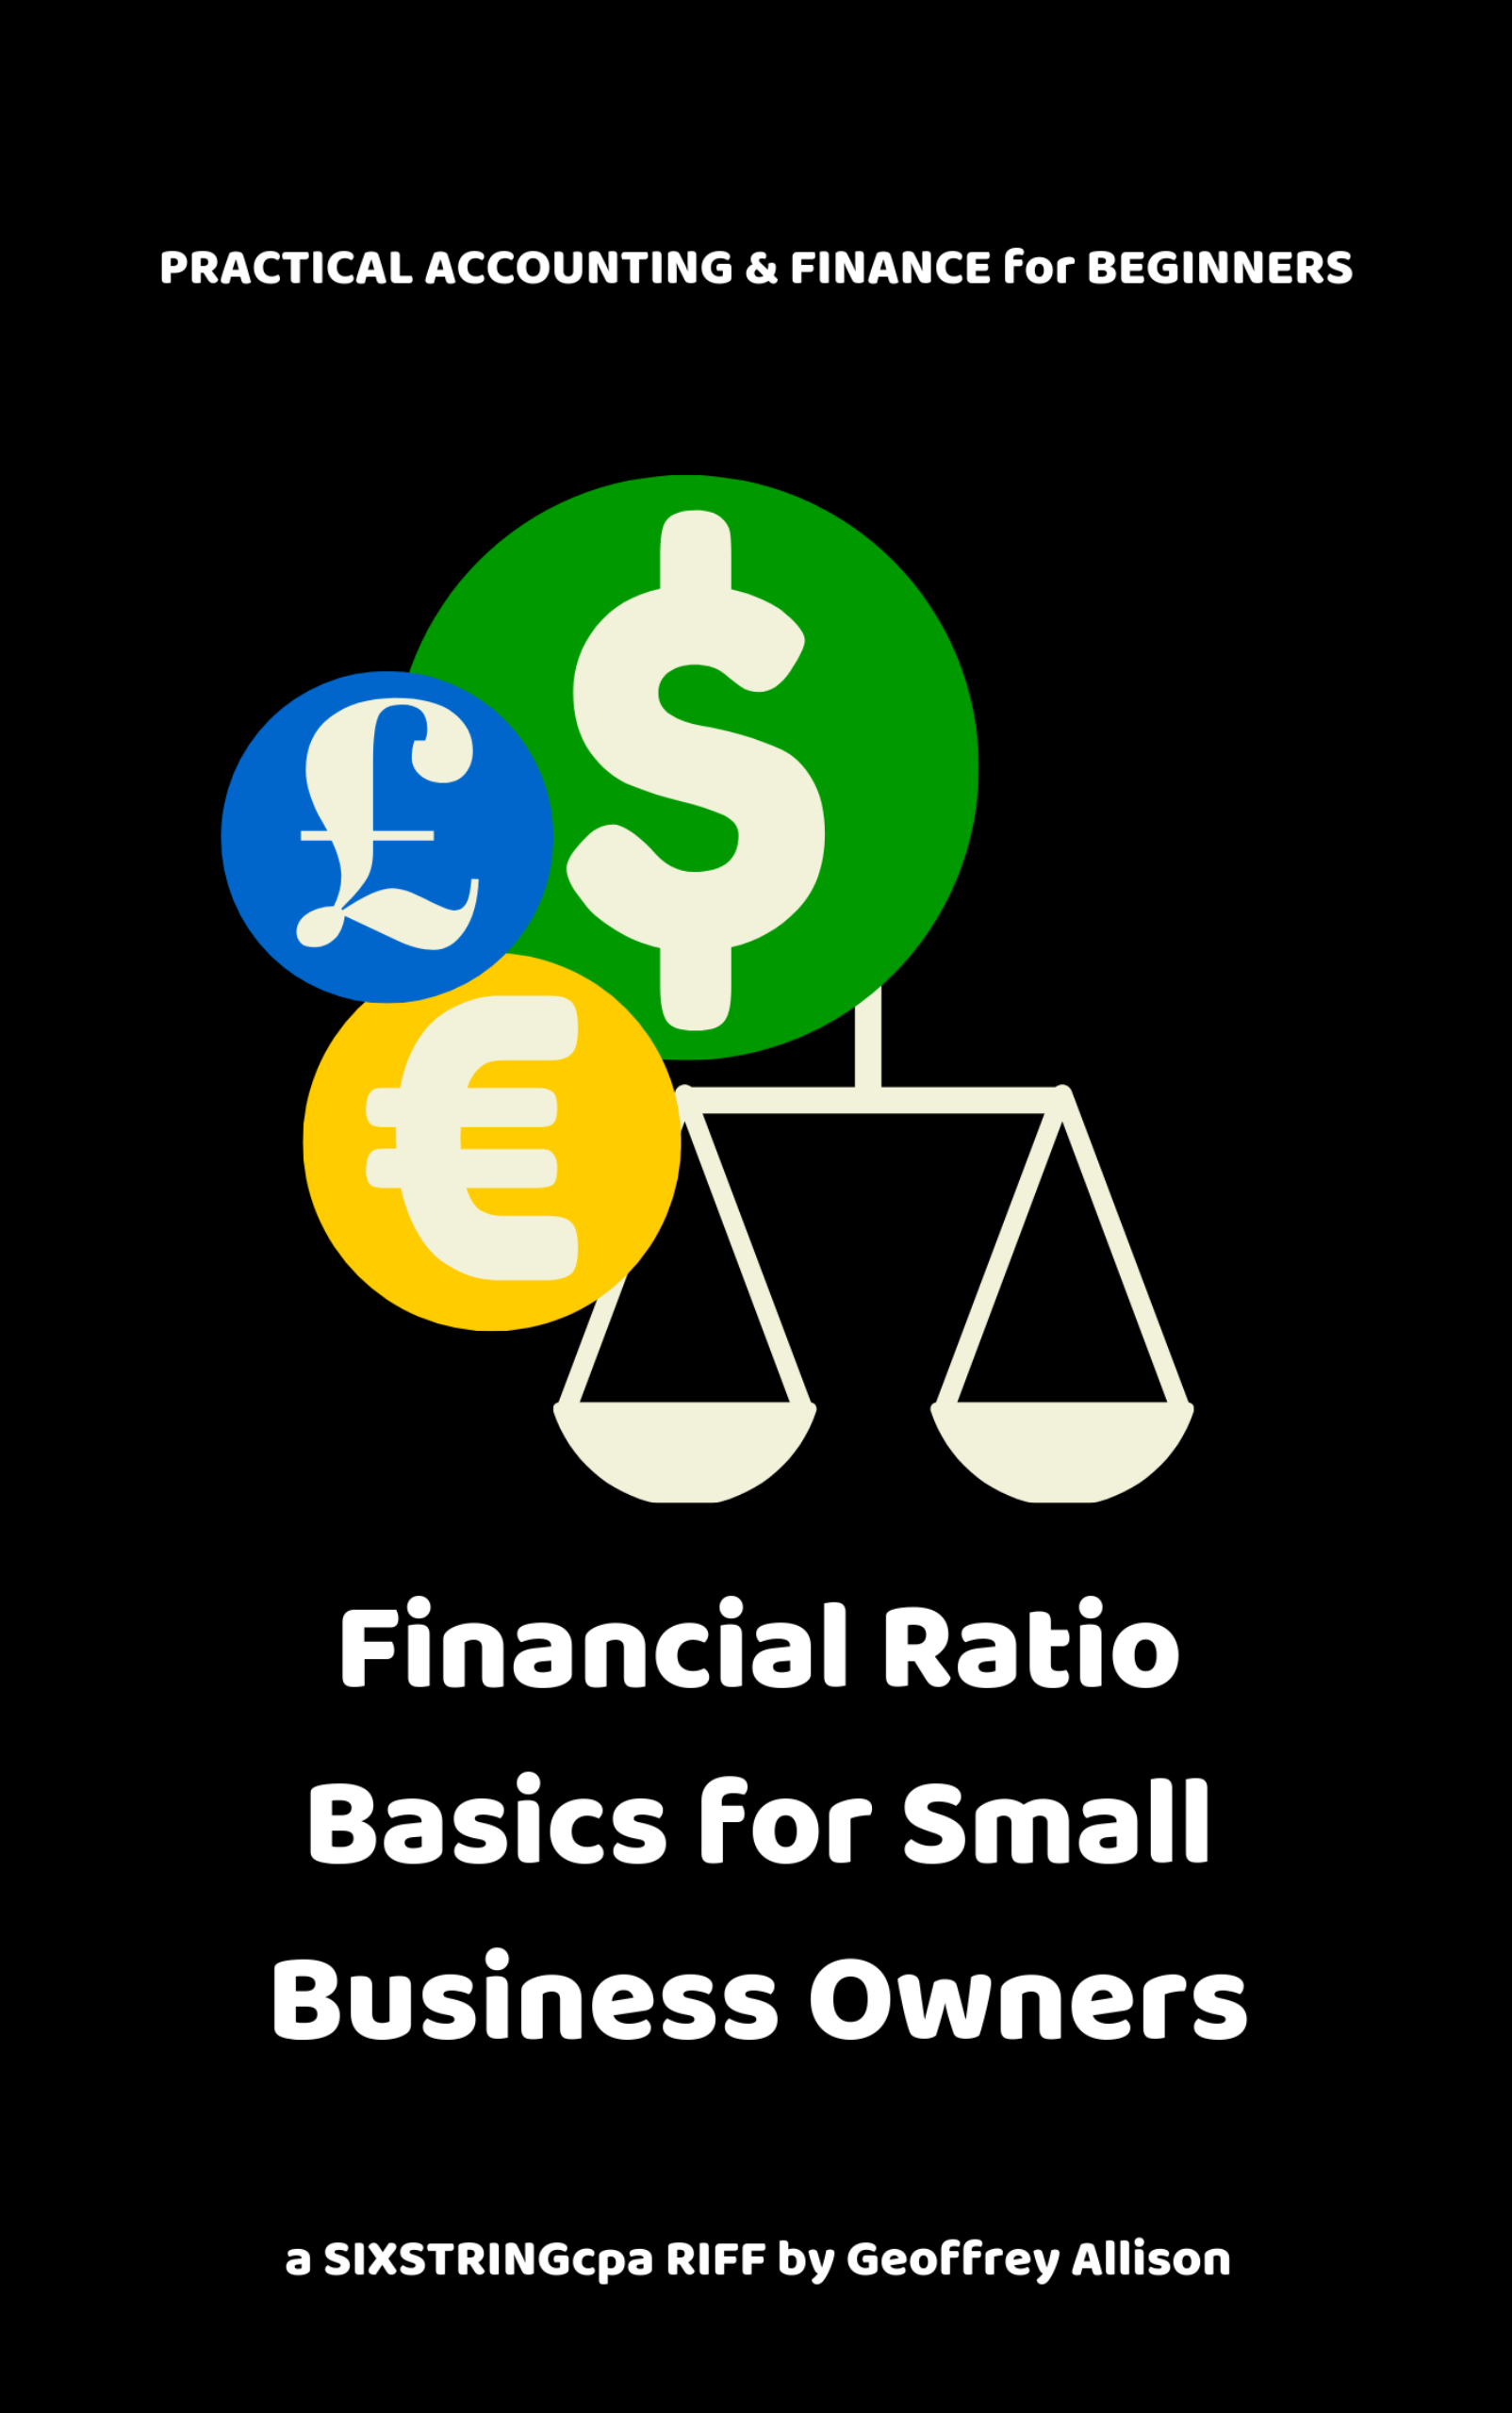 Financial Ratio Basics for Small Business Owners